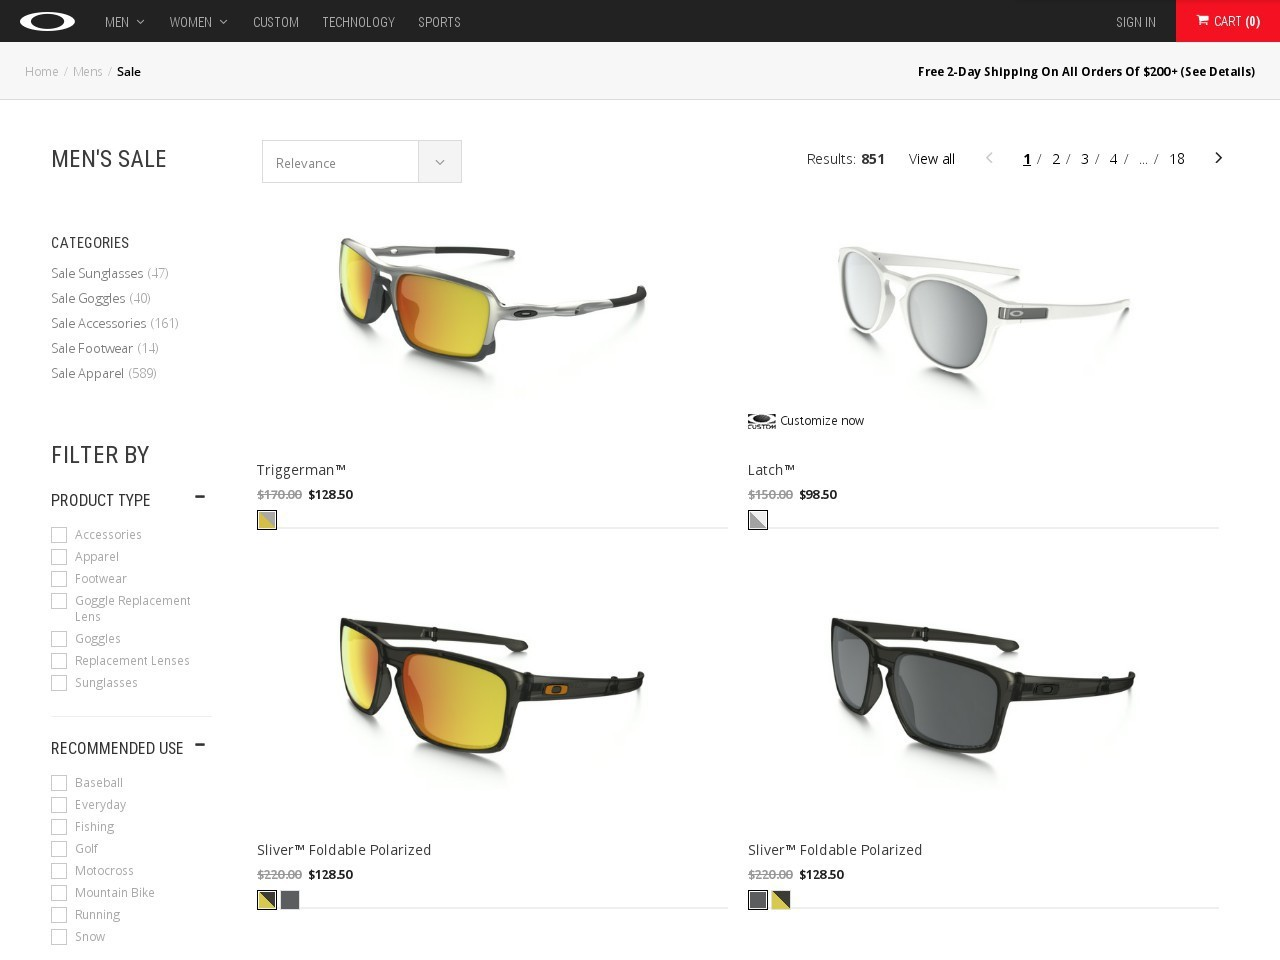 Bargain - 50% off Sale - Oakley Accessories and Apparel